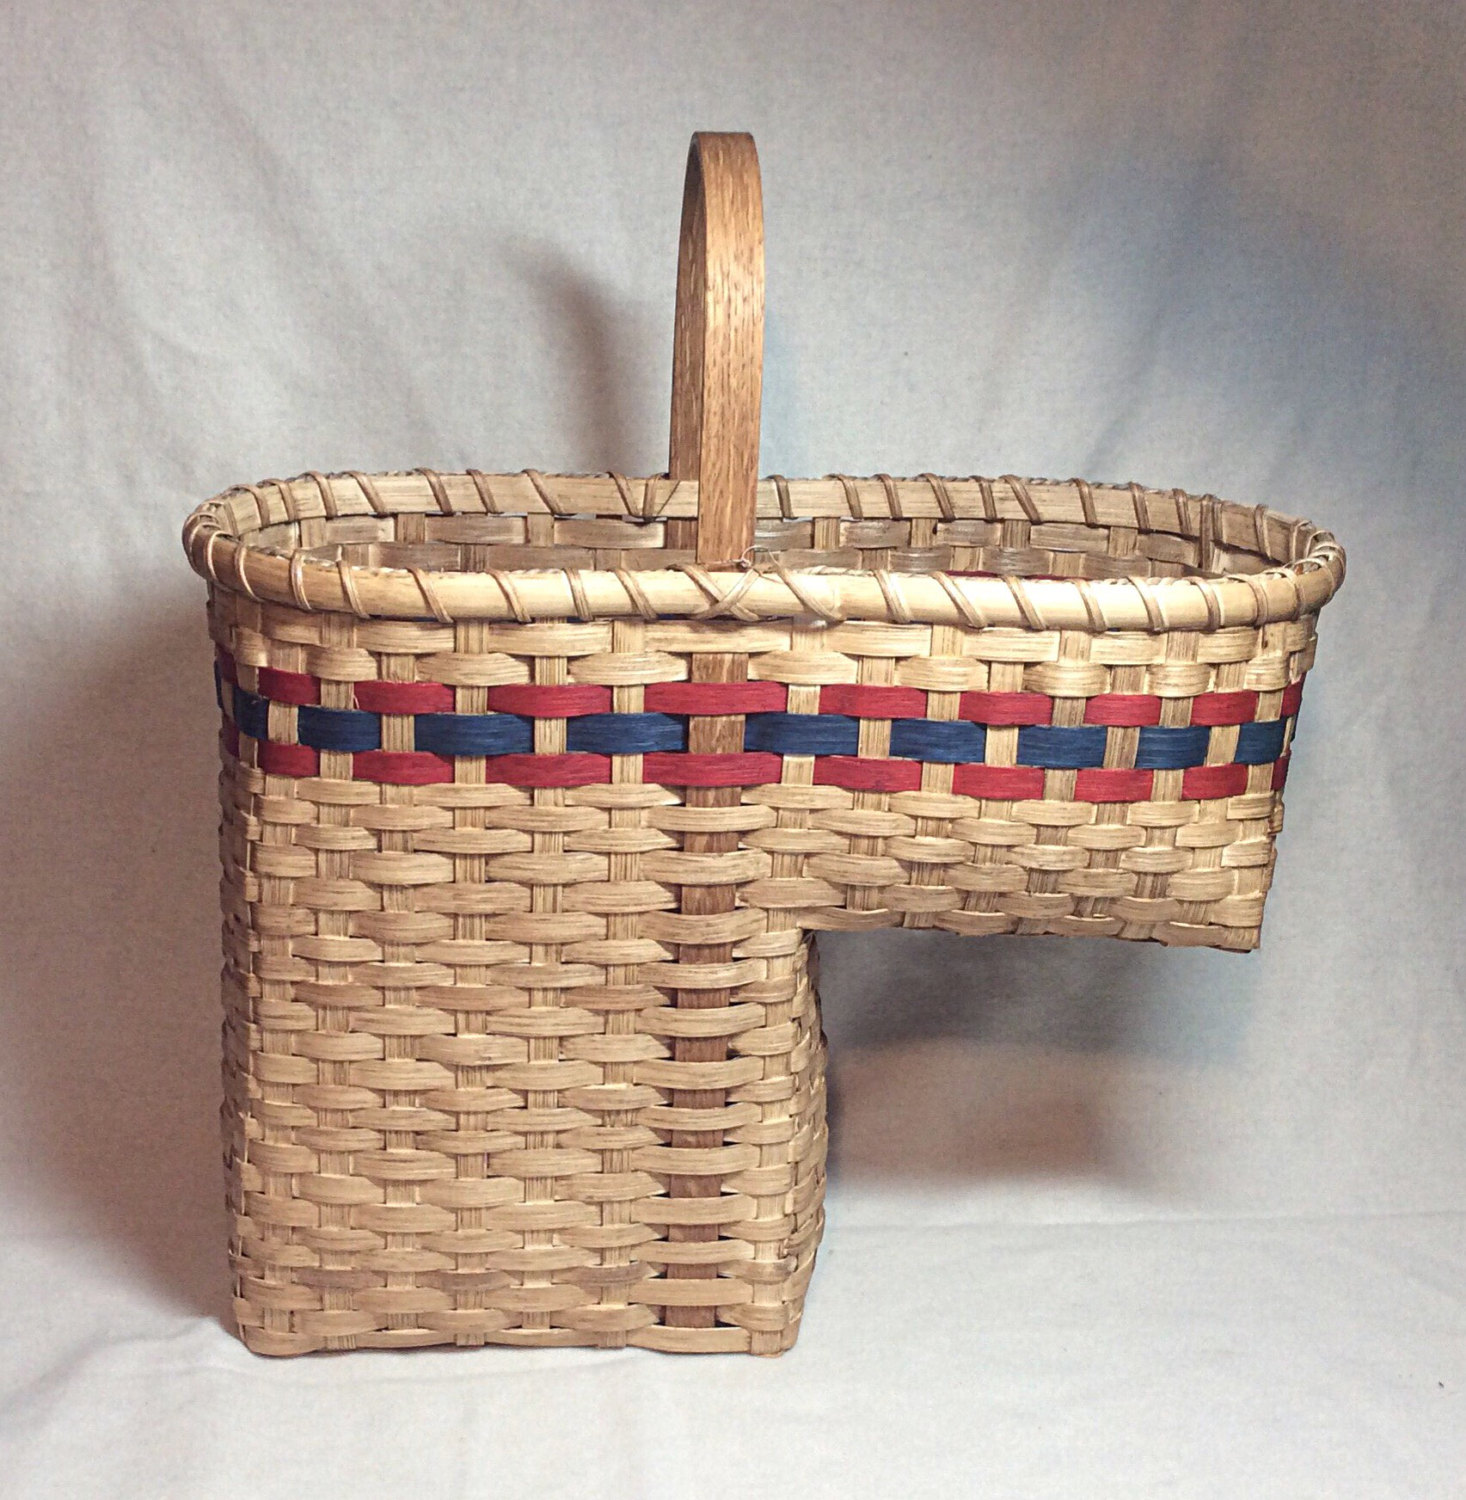 Reed clipart seagrass Reed Stair  basket basket